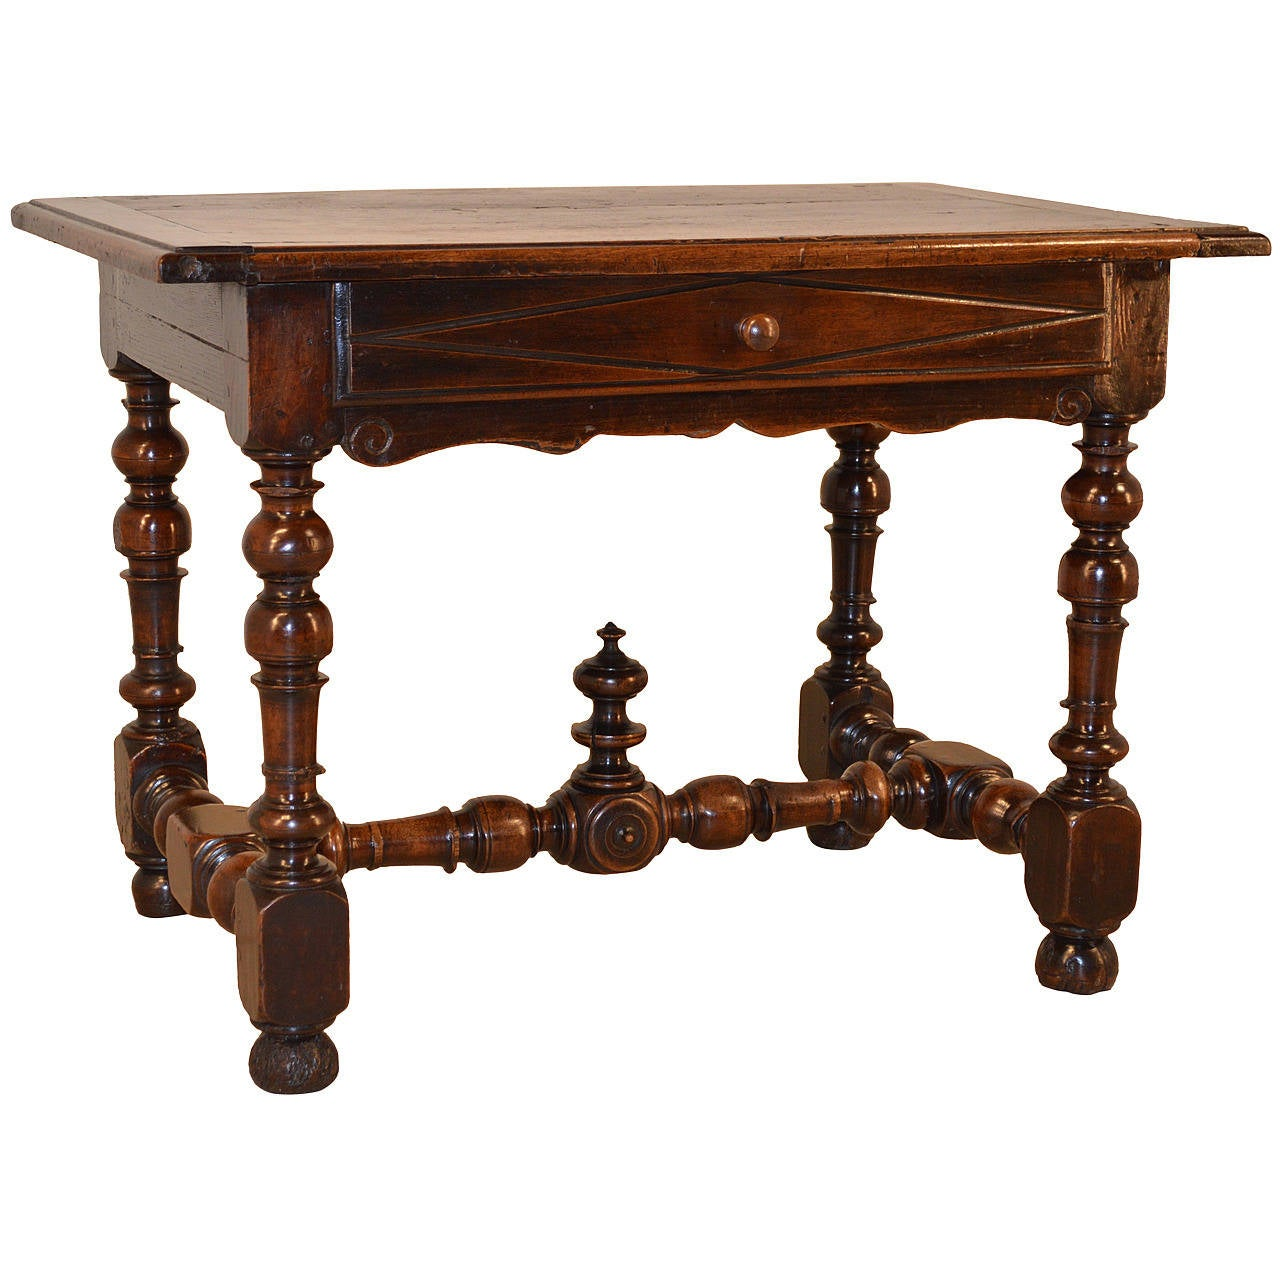 18th century french walnut side table for sale at 1stdibs for Walnut side table